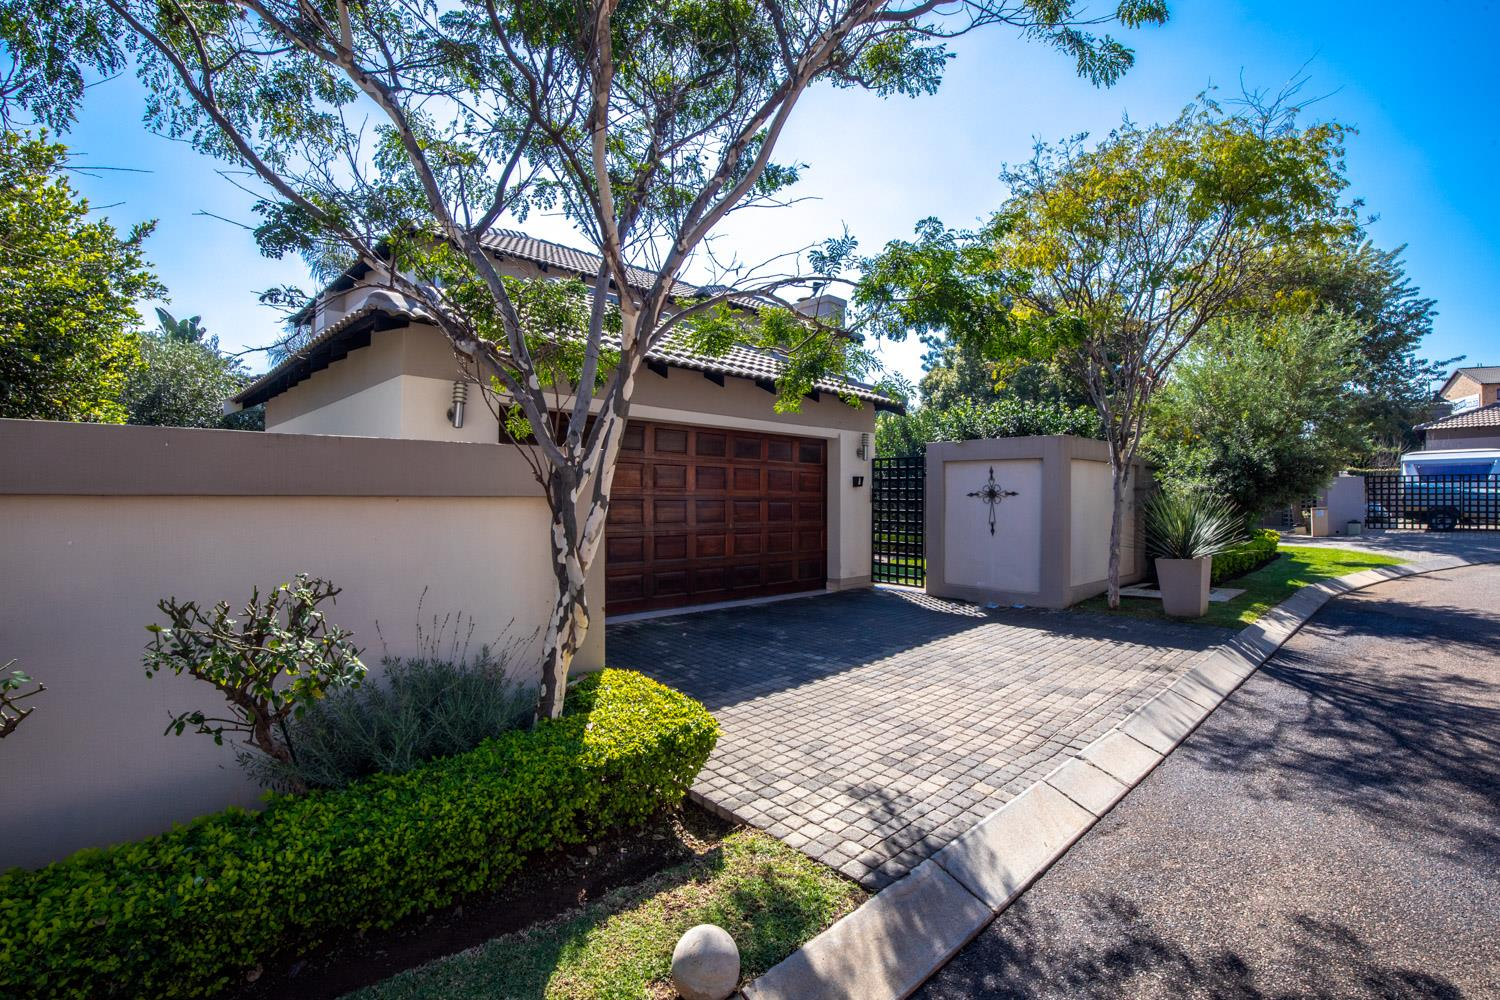 3 Bedroom House For Sale in Olympus